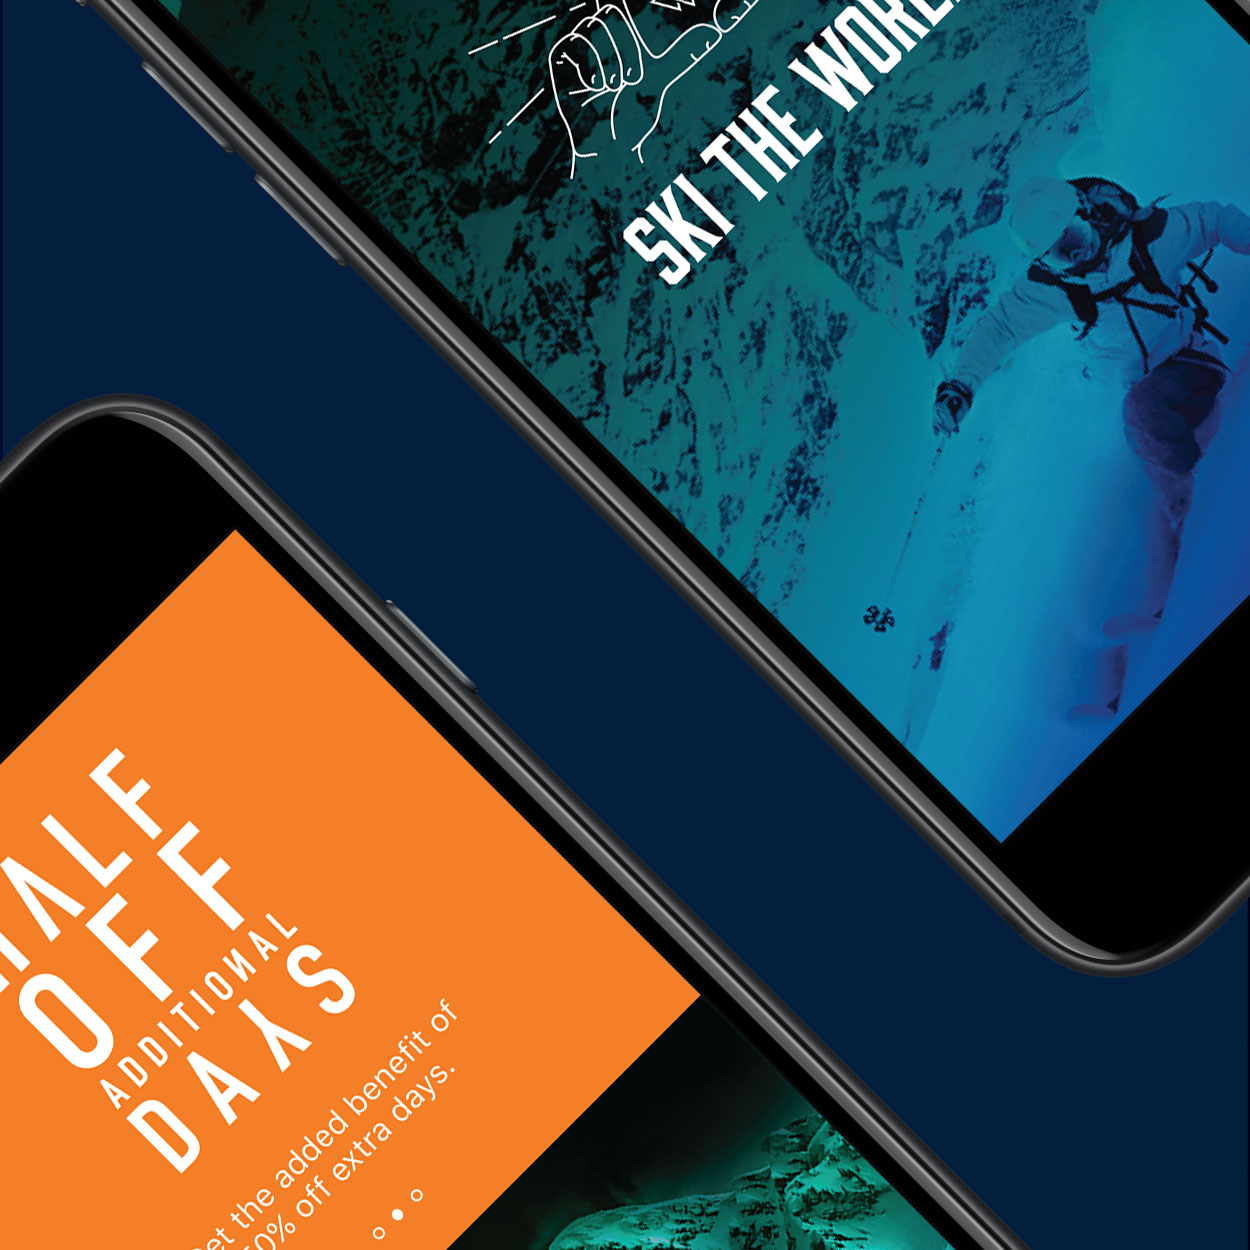 Mountain collective advertisements shown on two mobile phones.